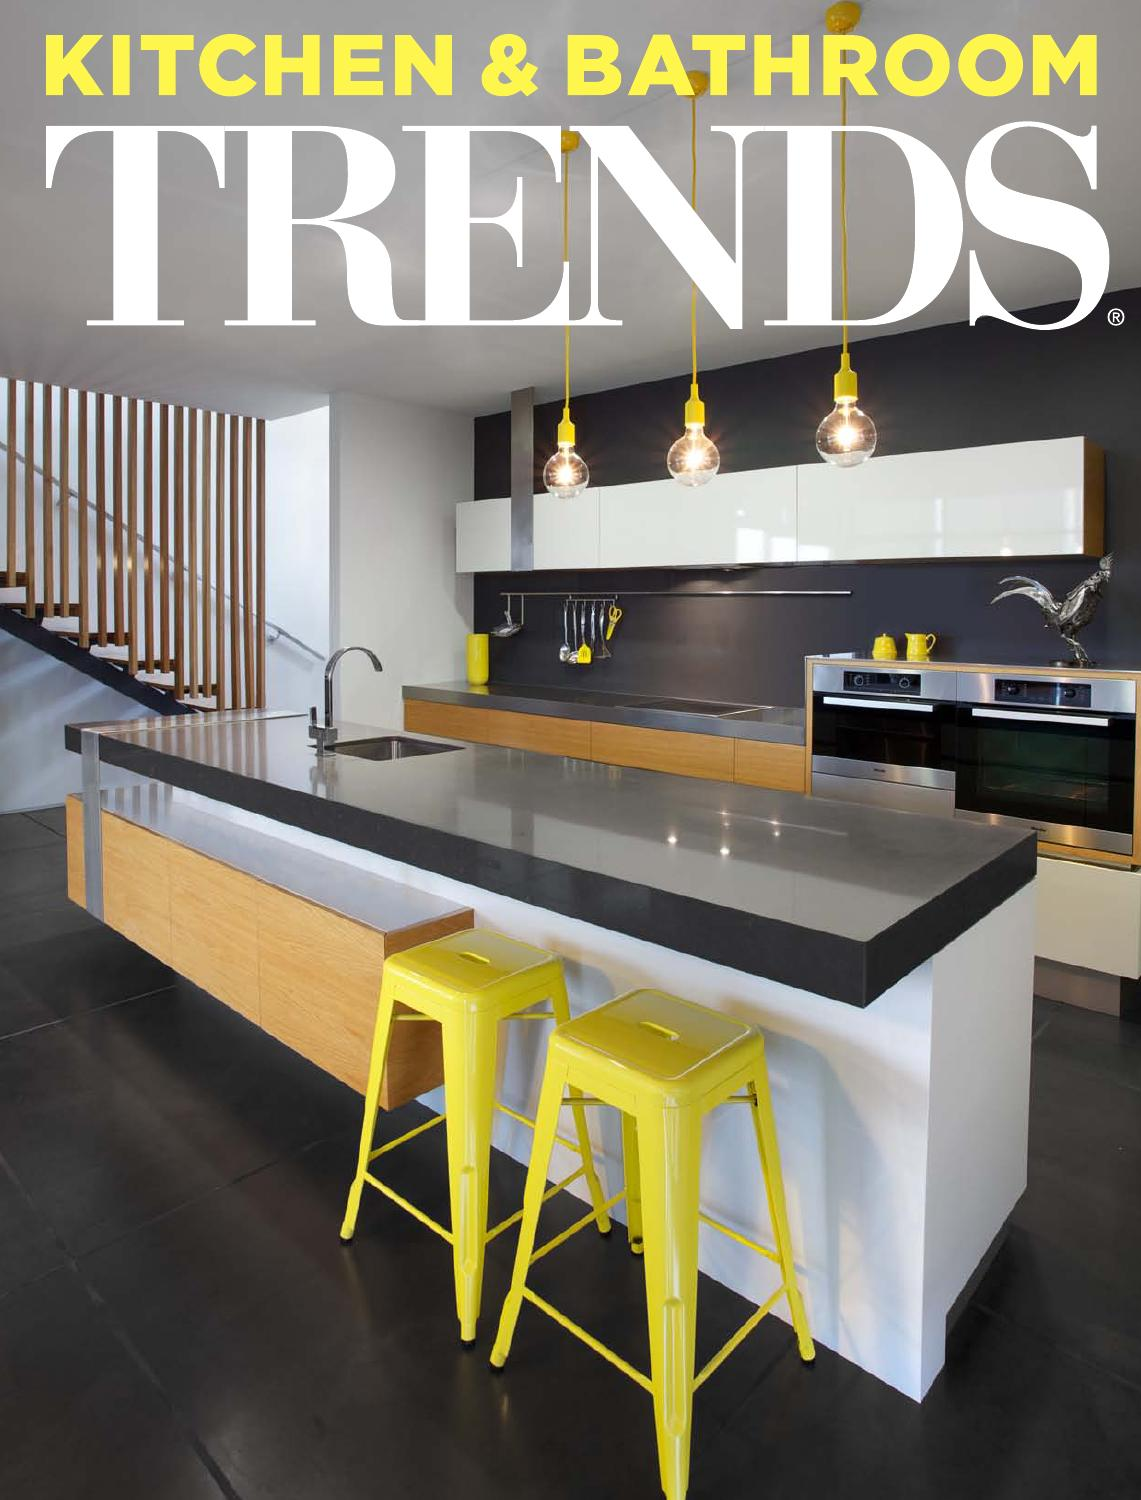 Kitchen Bathroom Trends New Zealand Vol 30 02 By